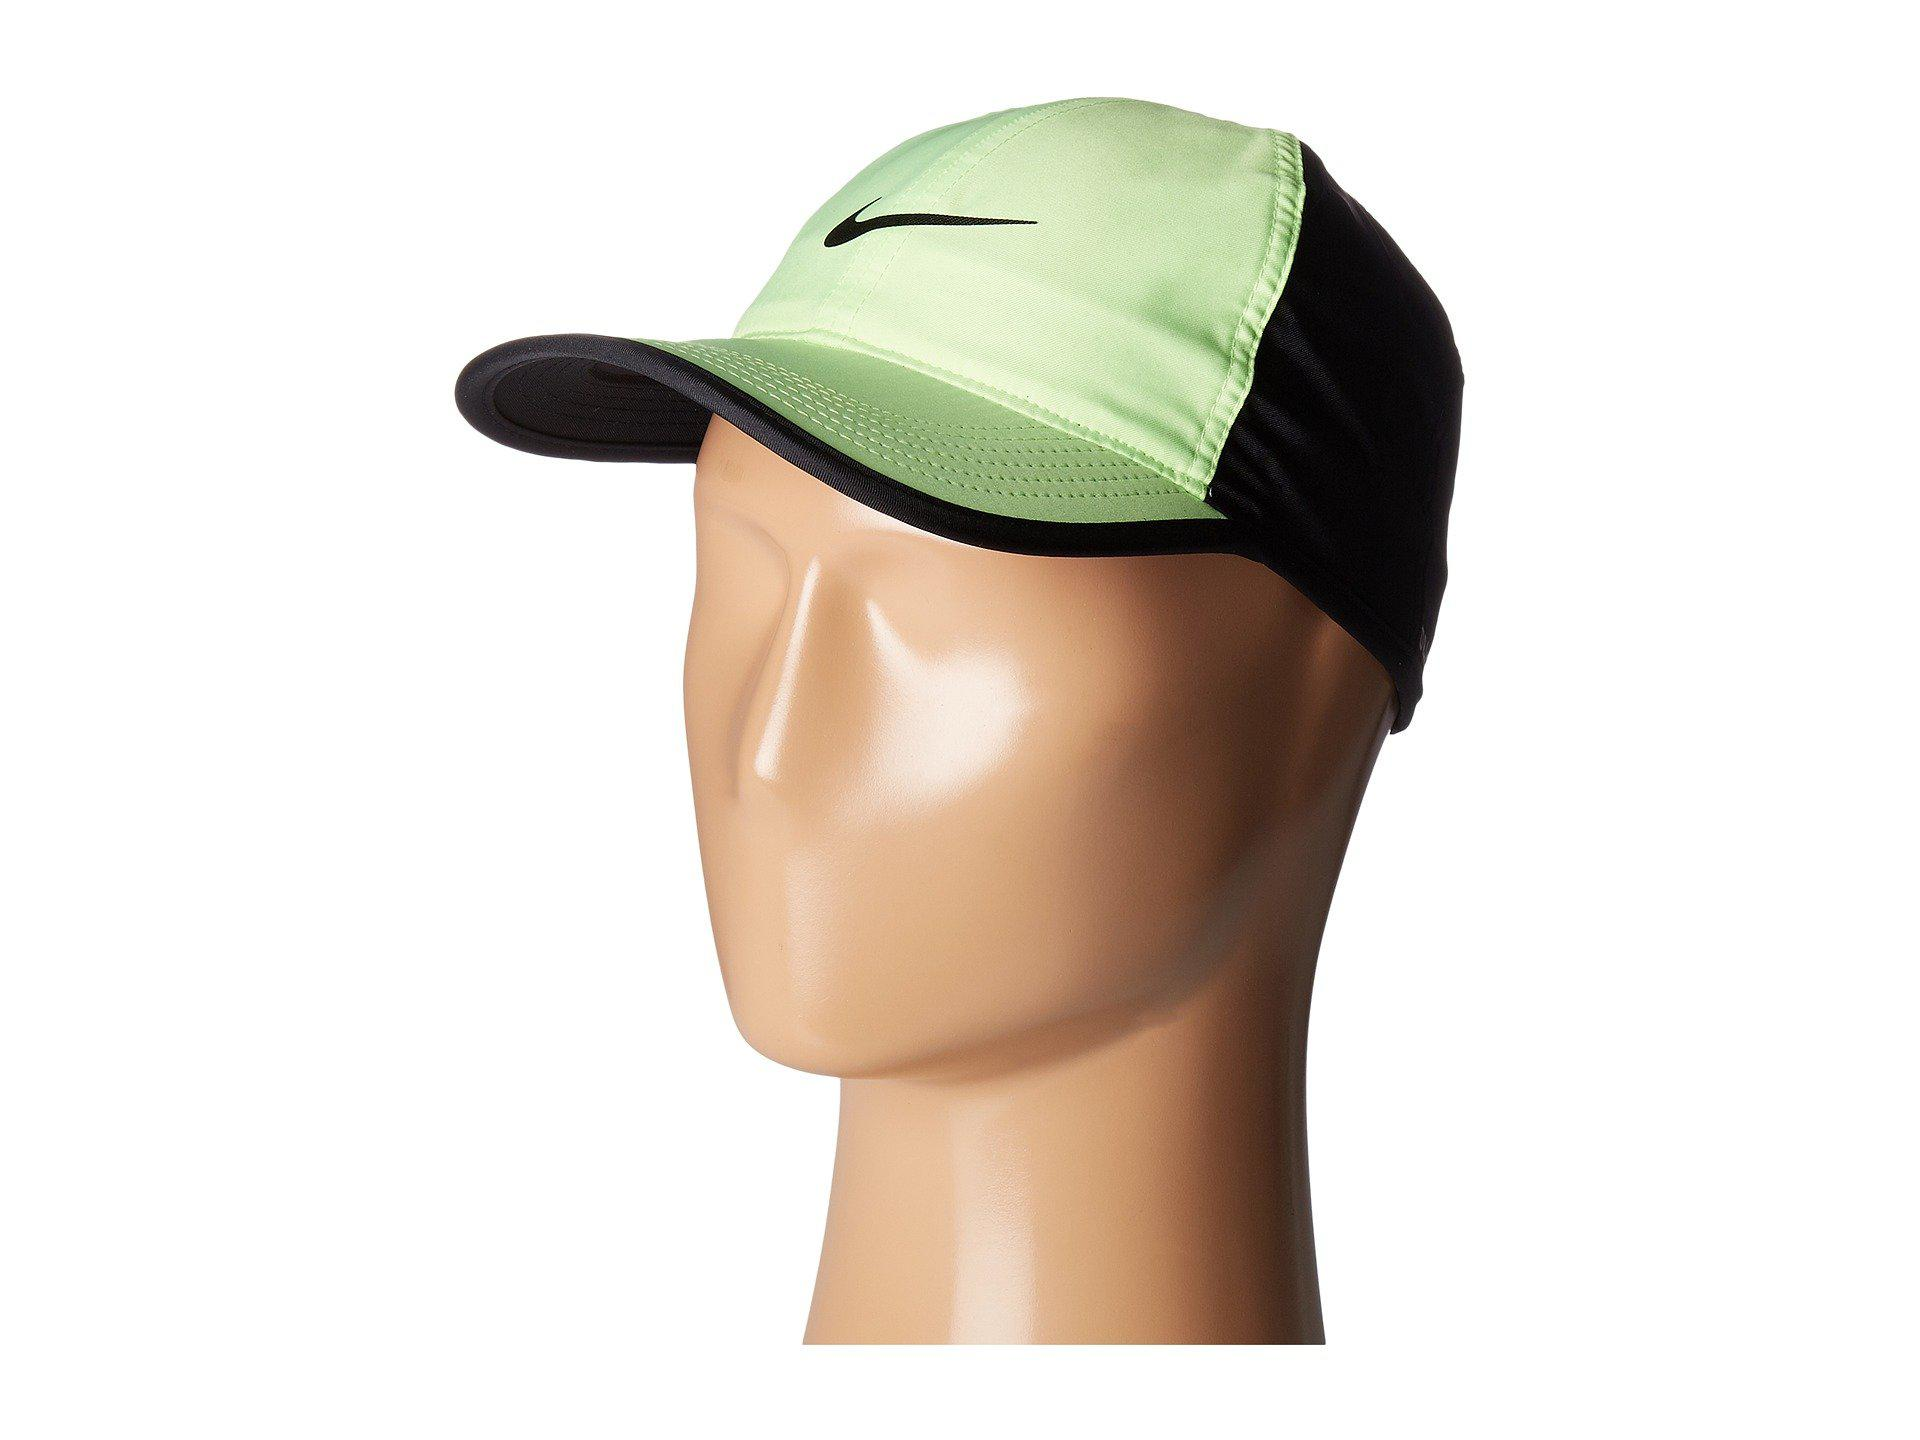 9a0a1f606 Lyst - Nike Court Aerobill Featherlight Tennis Cap in Black for Men